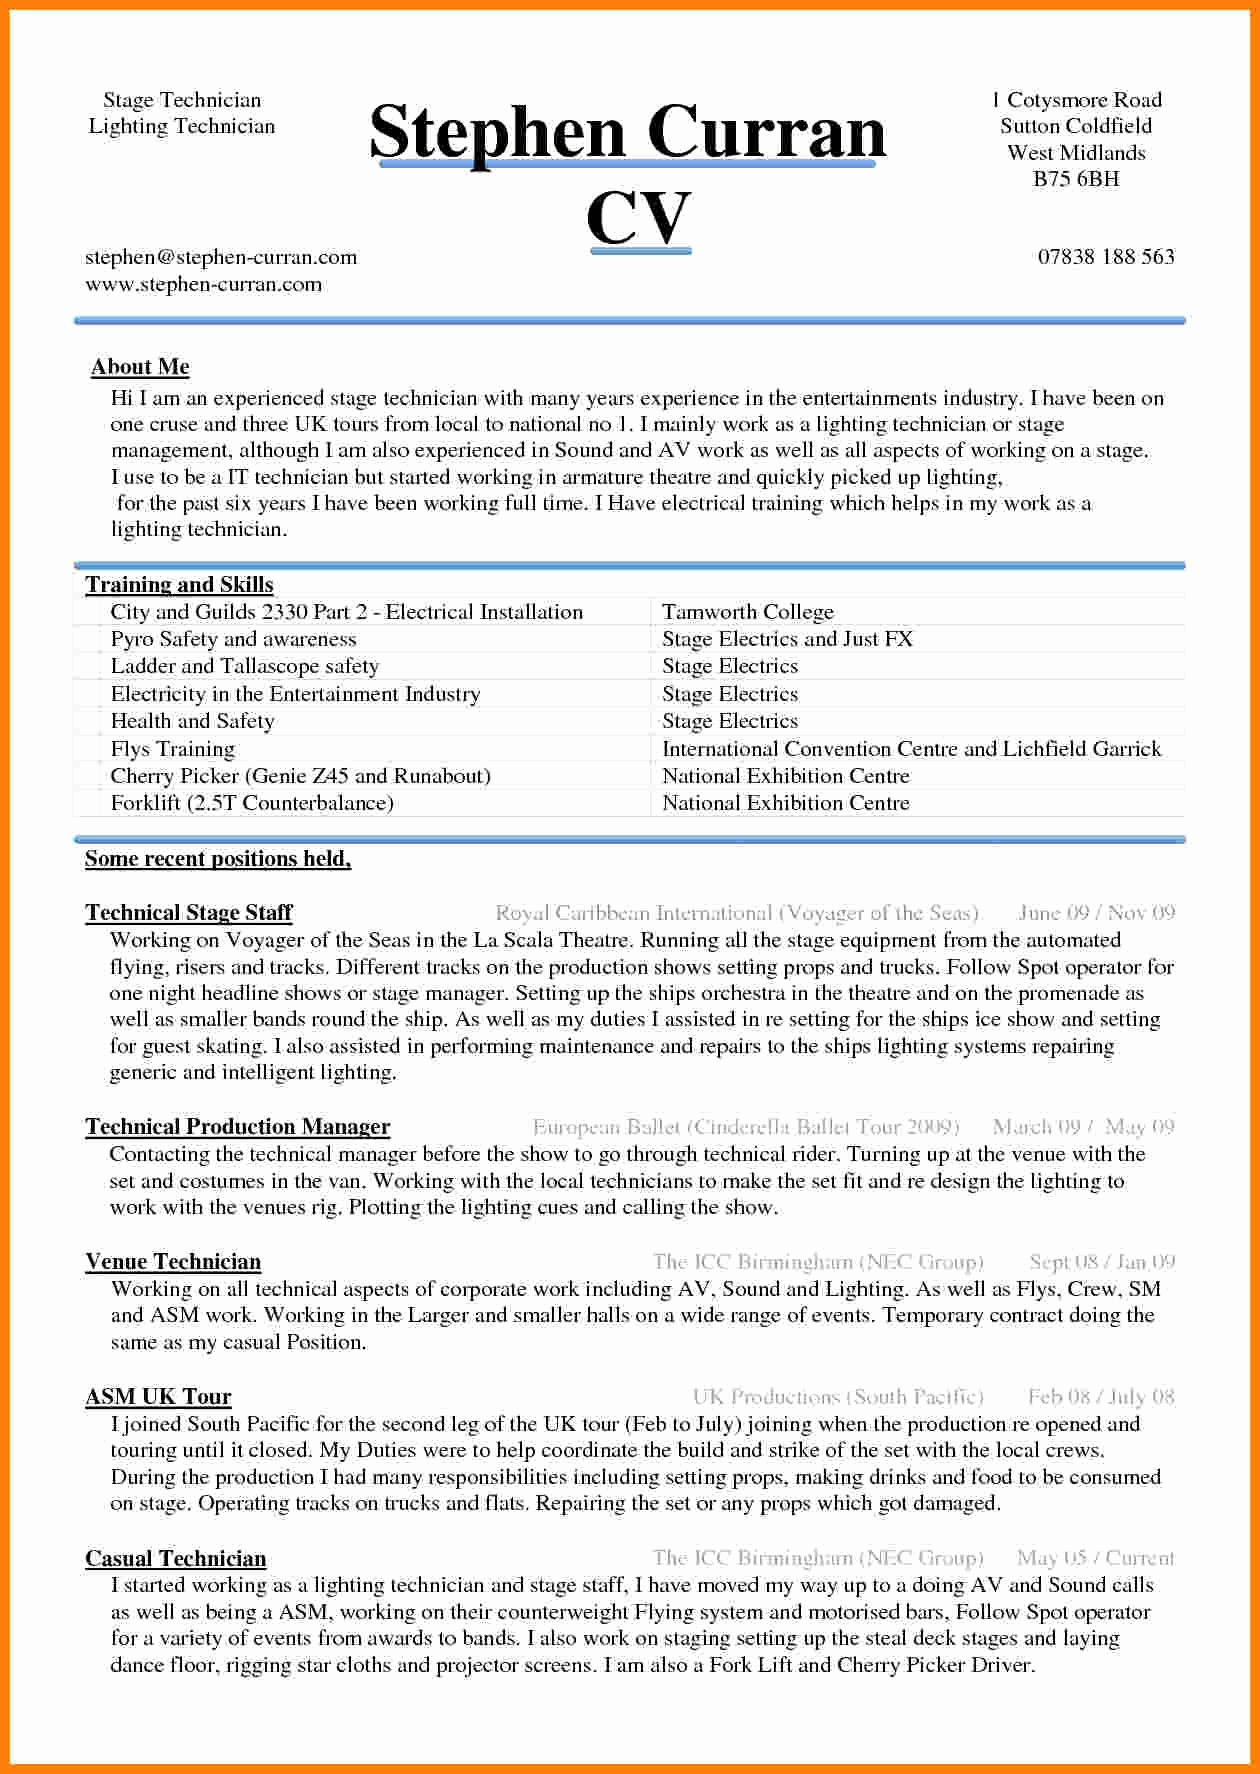 Free Curriculum Vitae Template Word Best Of 5 Cv Sample Word Document